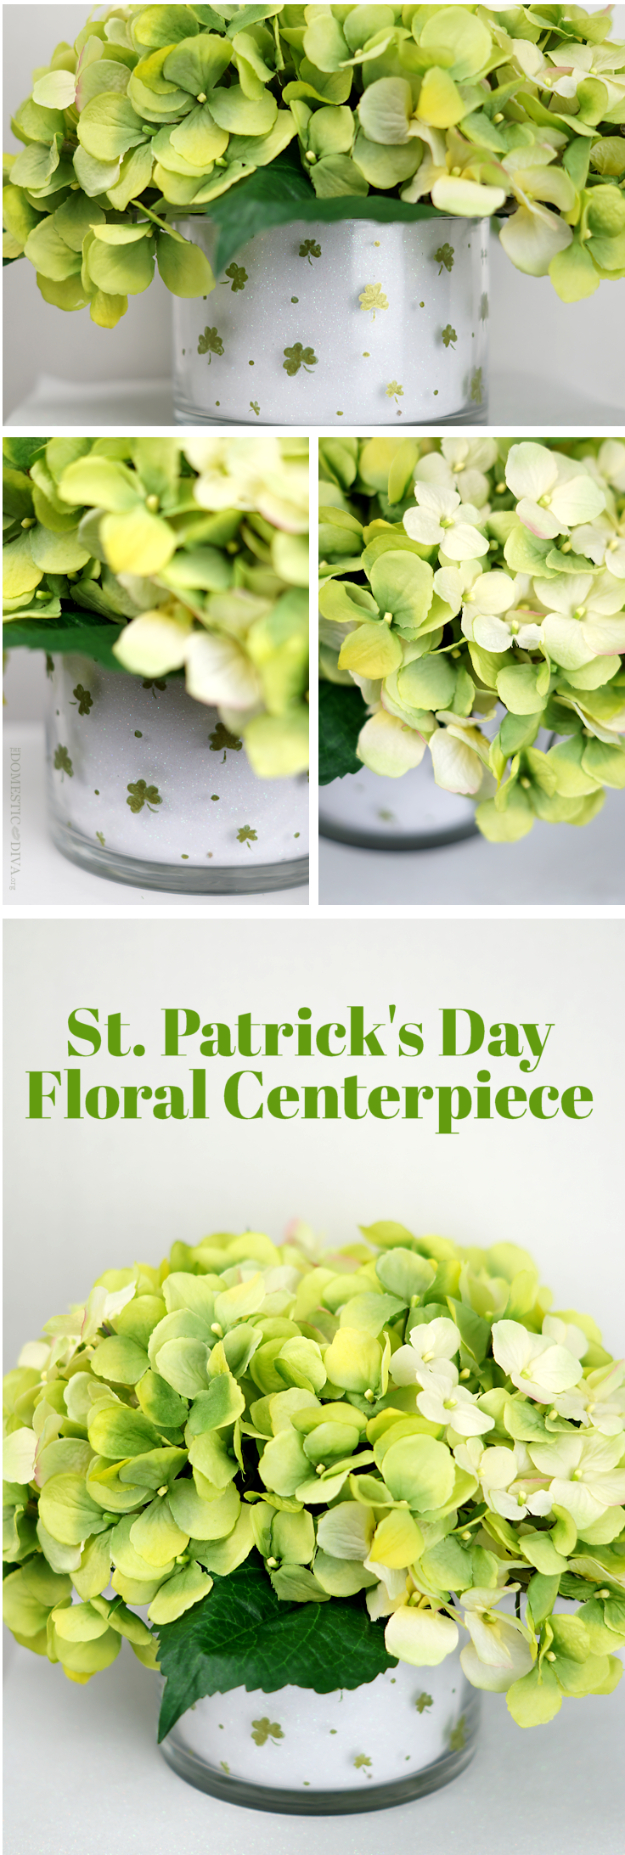 DIY St Patricks Day Ideas - DIY Shamrock Floral Arrangement Centerpiece - Food and Best Recipes, Decorations and Home Decor, Party Ideas - Cupcakes, Drinks, Festive St Patrick Day Parties With these Easy, Quick and Cool Crafts and DIY Projects http://diyjoy.com/st-patricks-day-ideas